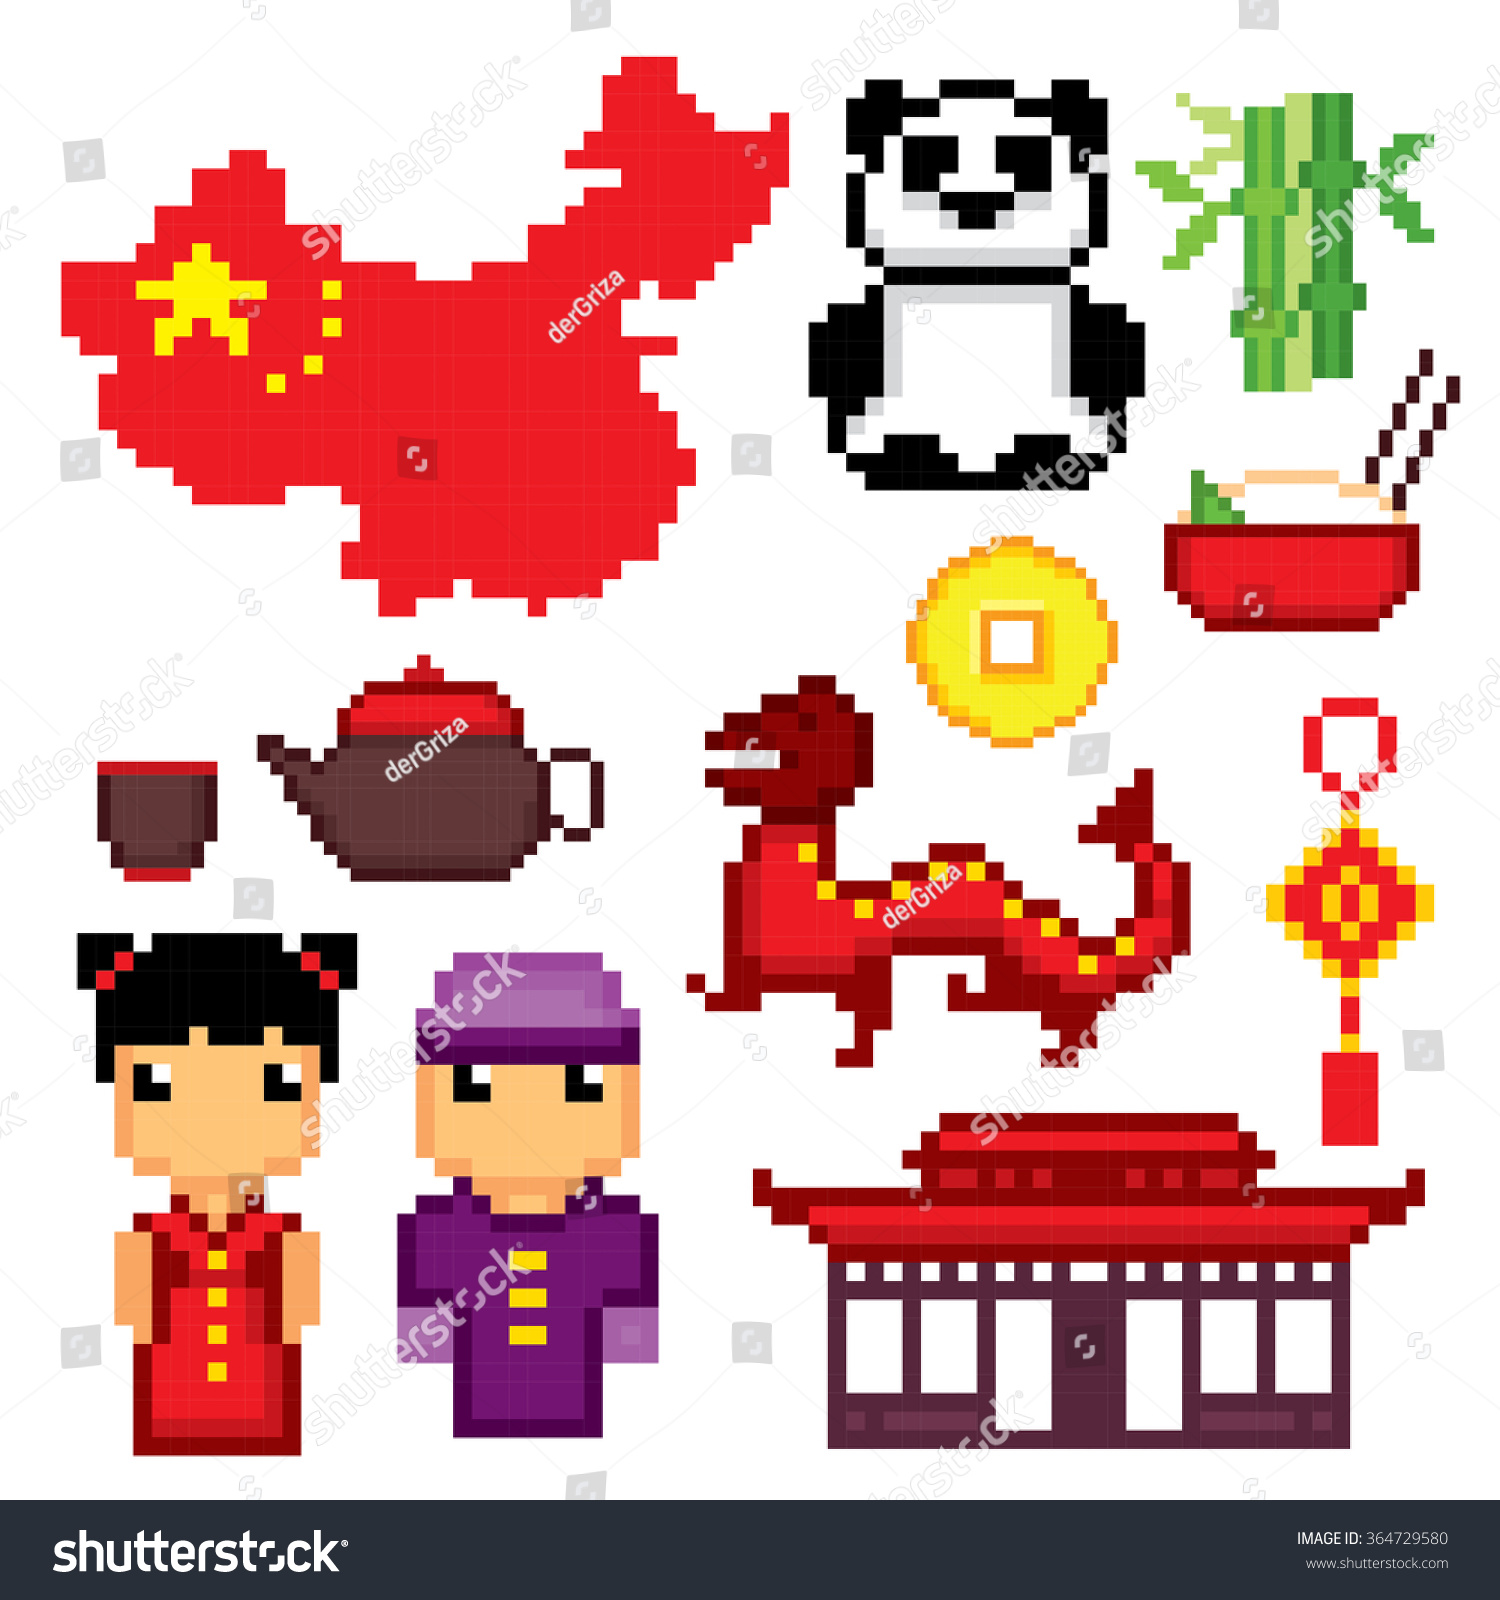 Royalty Free China Culture Symbols Icons Set Pixel 364729580